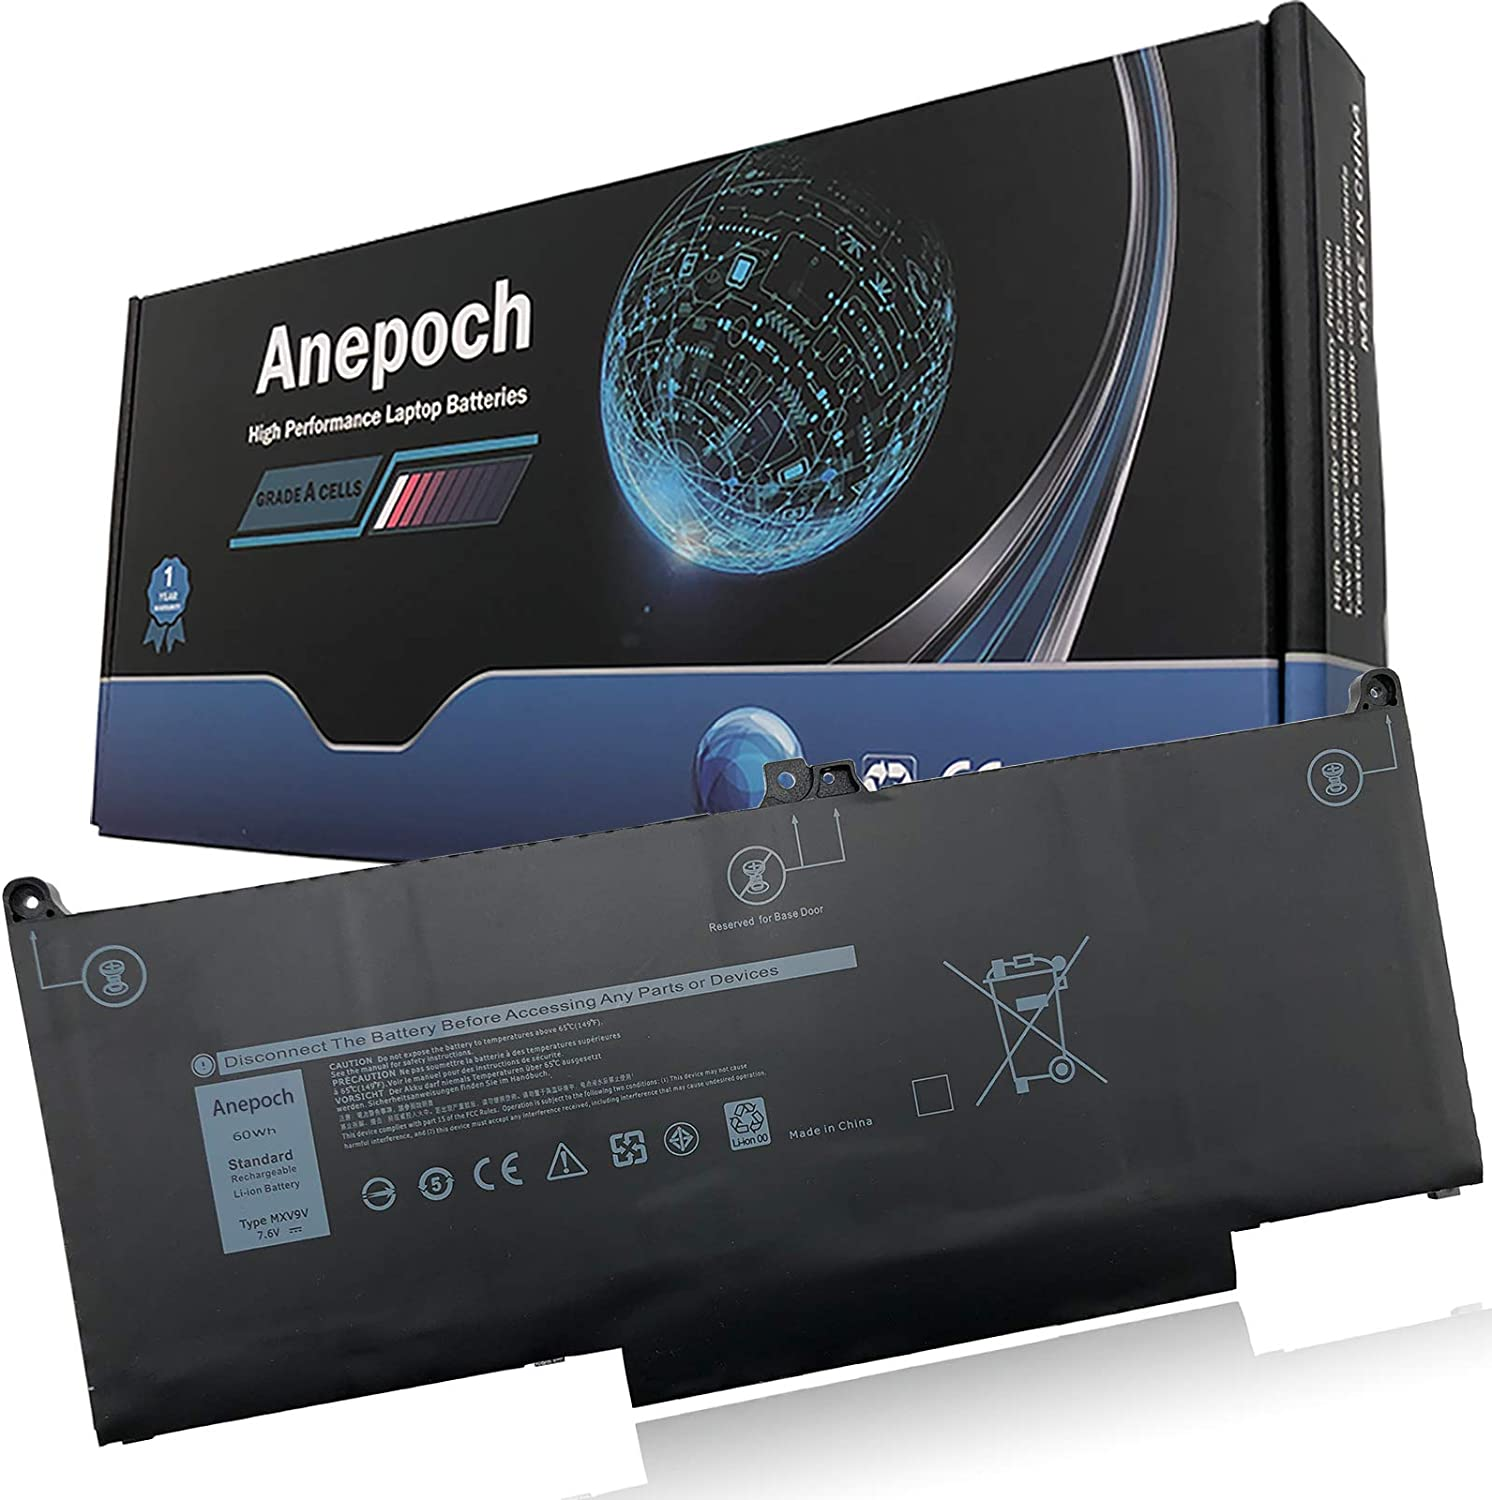 Anepoch MXV9V Laptop Battery Compatible with Dell Latitude 5300 5310 7300 7400 E5300 E7300 E7400 Series Notebook 5VC2M 05VC2M 829MX 0829MX 7.6V 60Wh 7500mAh 4-Cell